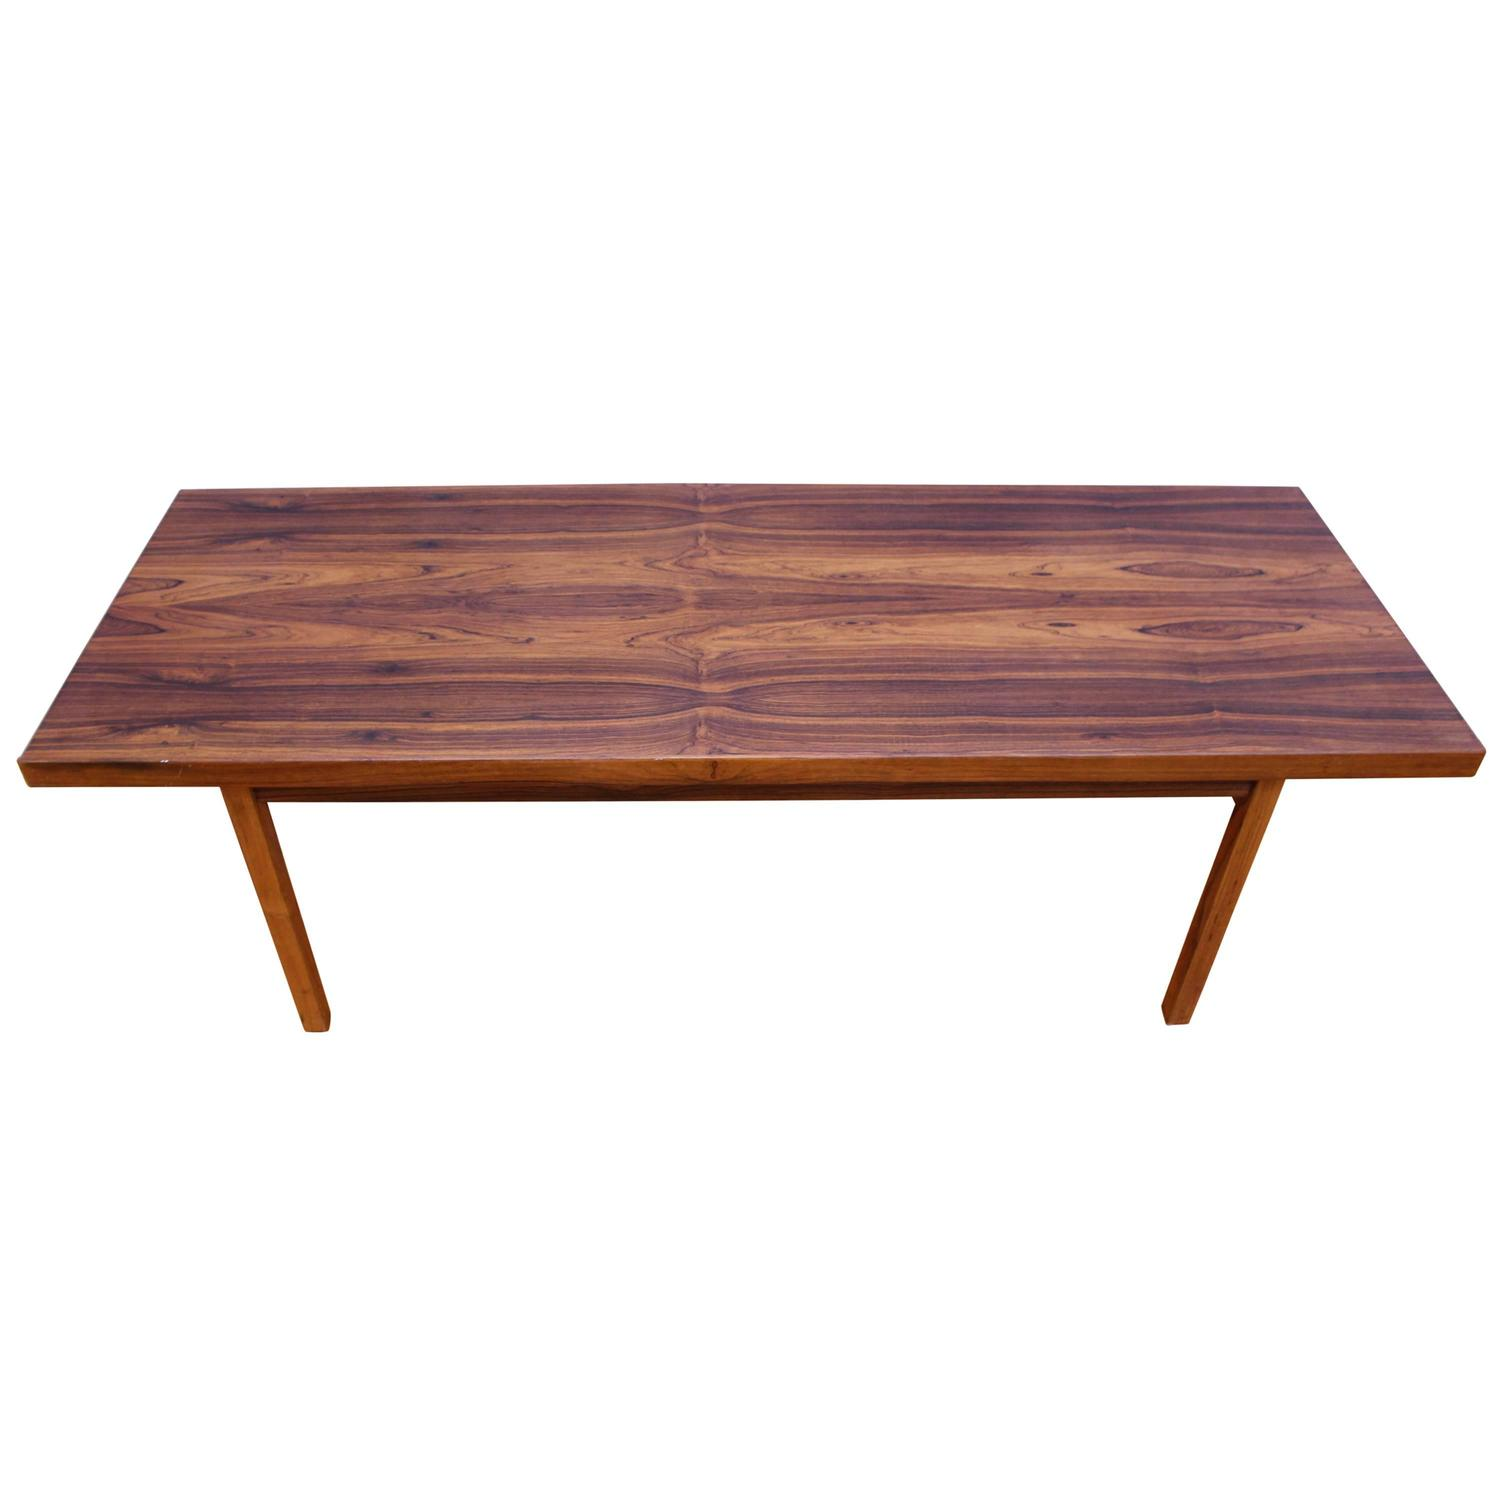 Danish mid century modern rosewood coffee table for sale at 1stdibs Mid century coffee tables